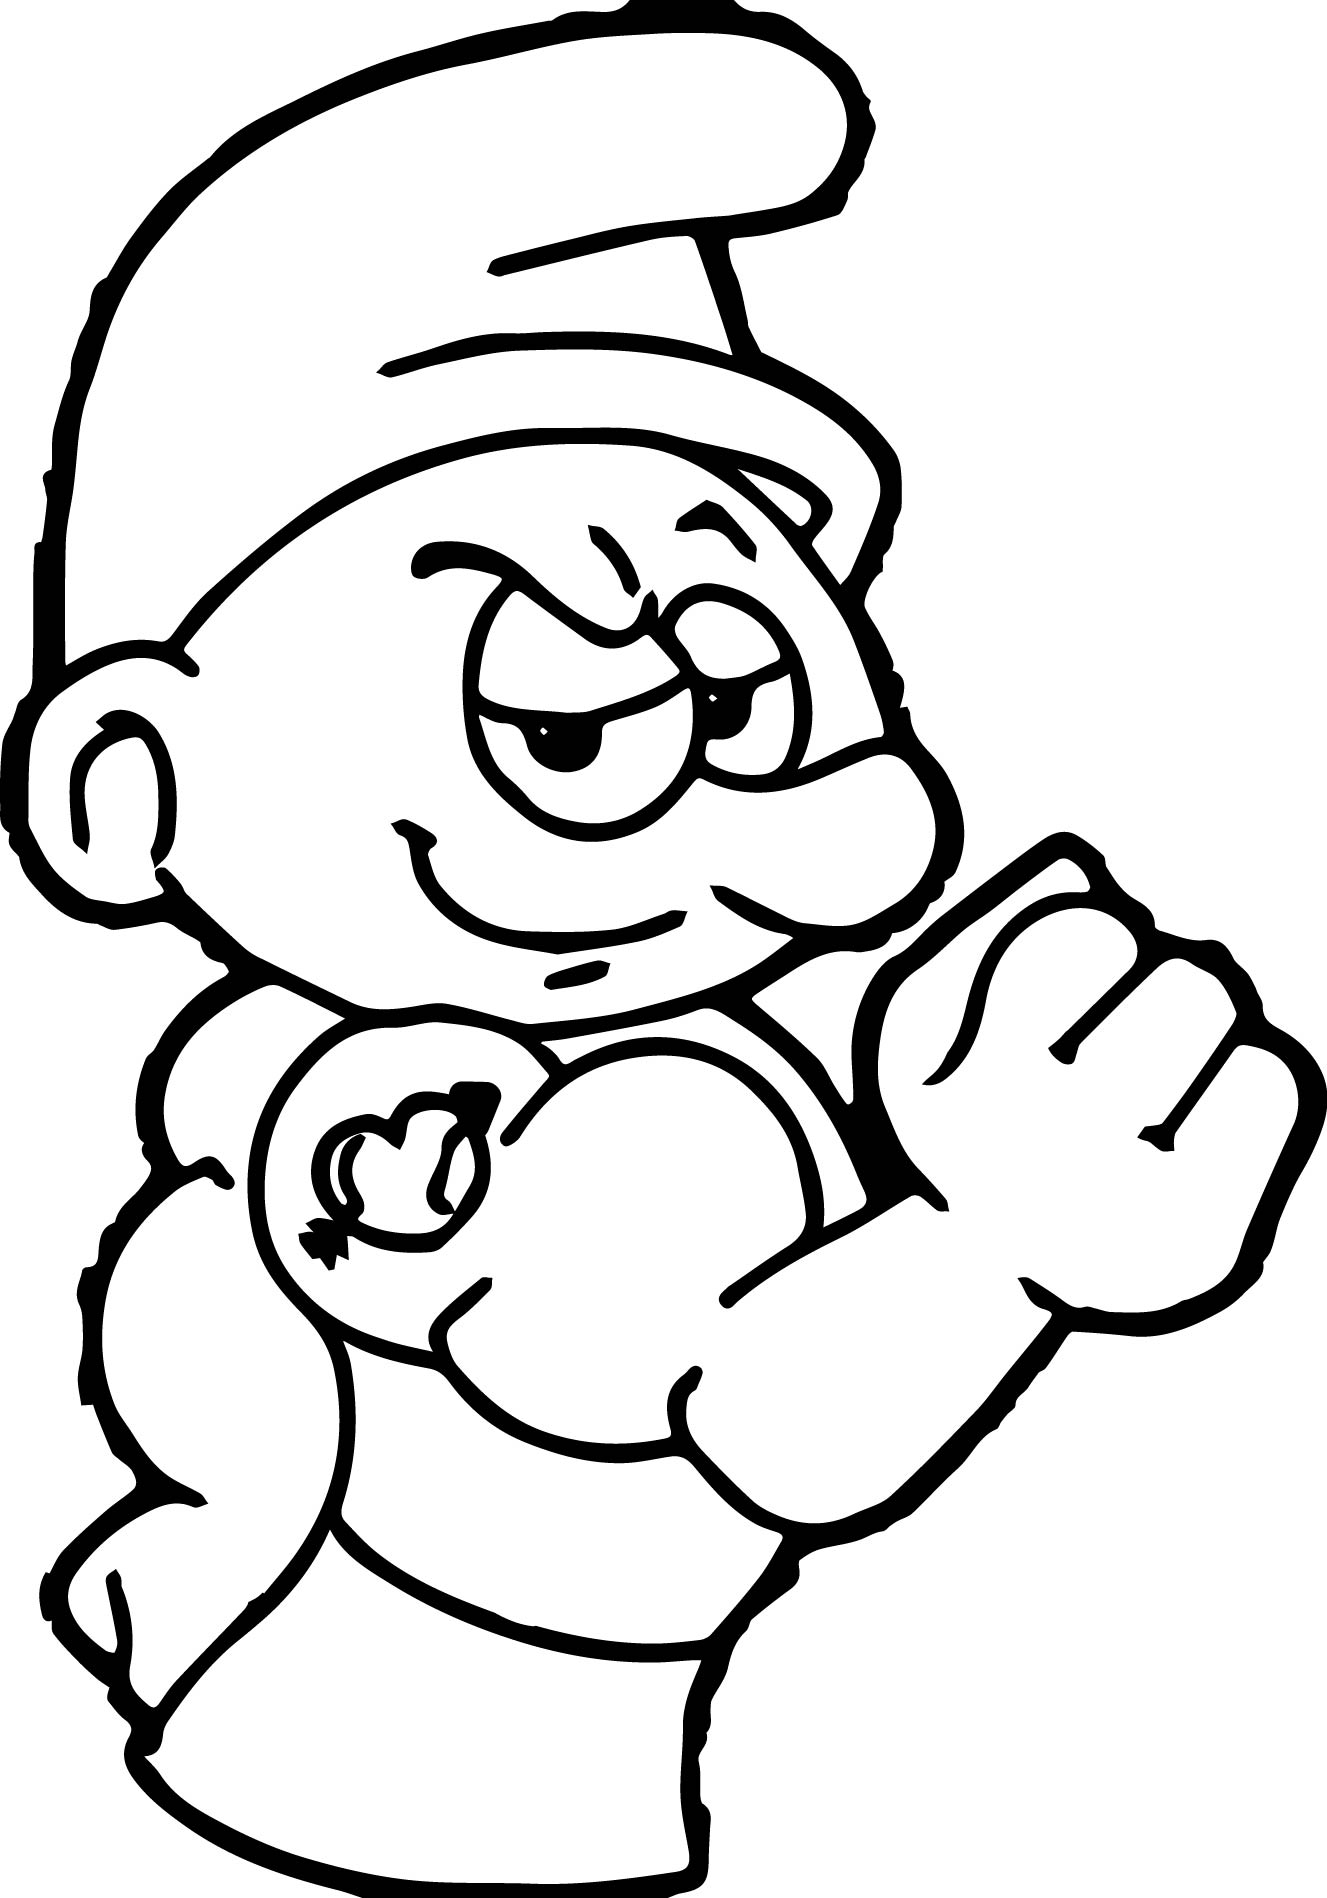 Colouring in pages smurfs - Power Smurf Coloring Page